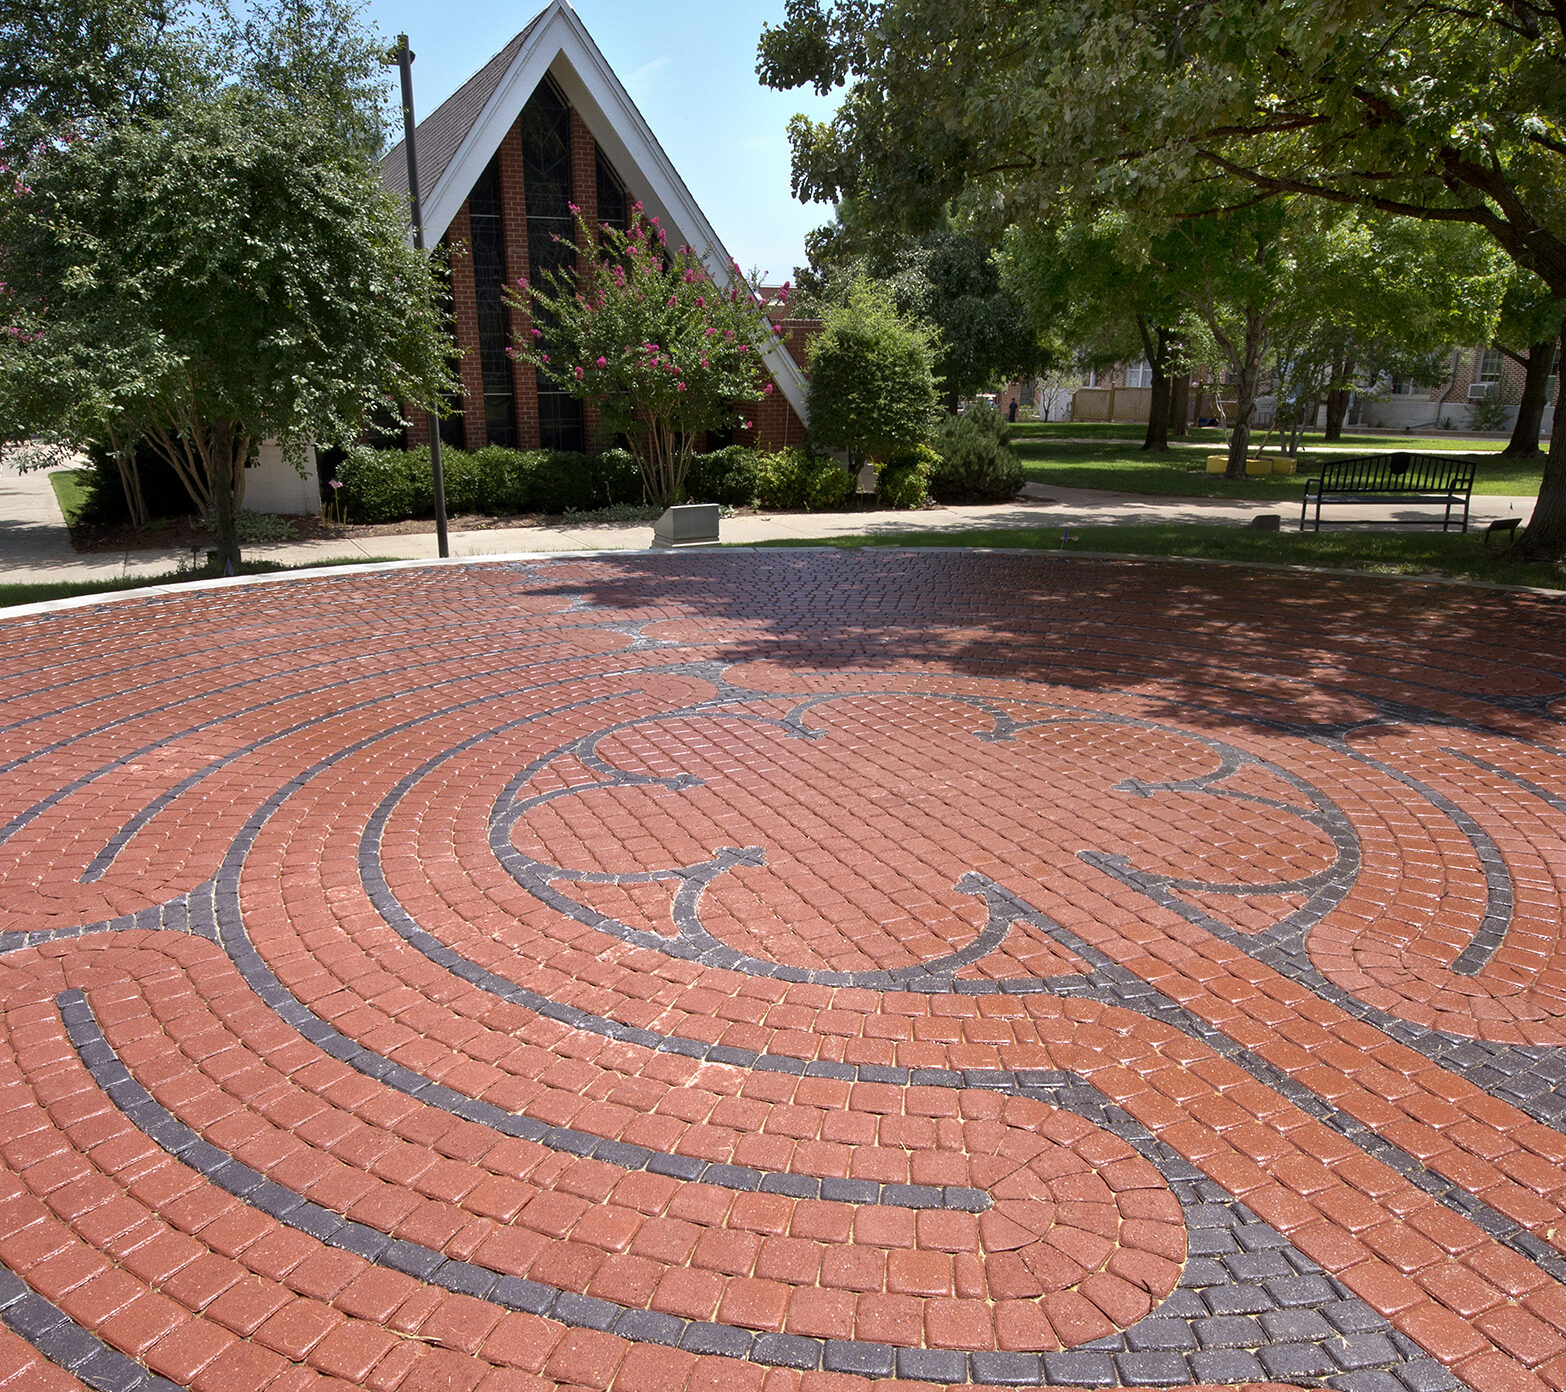 Labyrinth walk makes monthly appearance